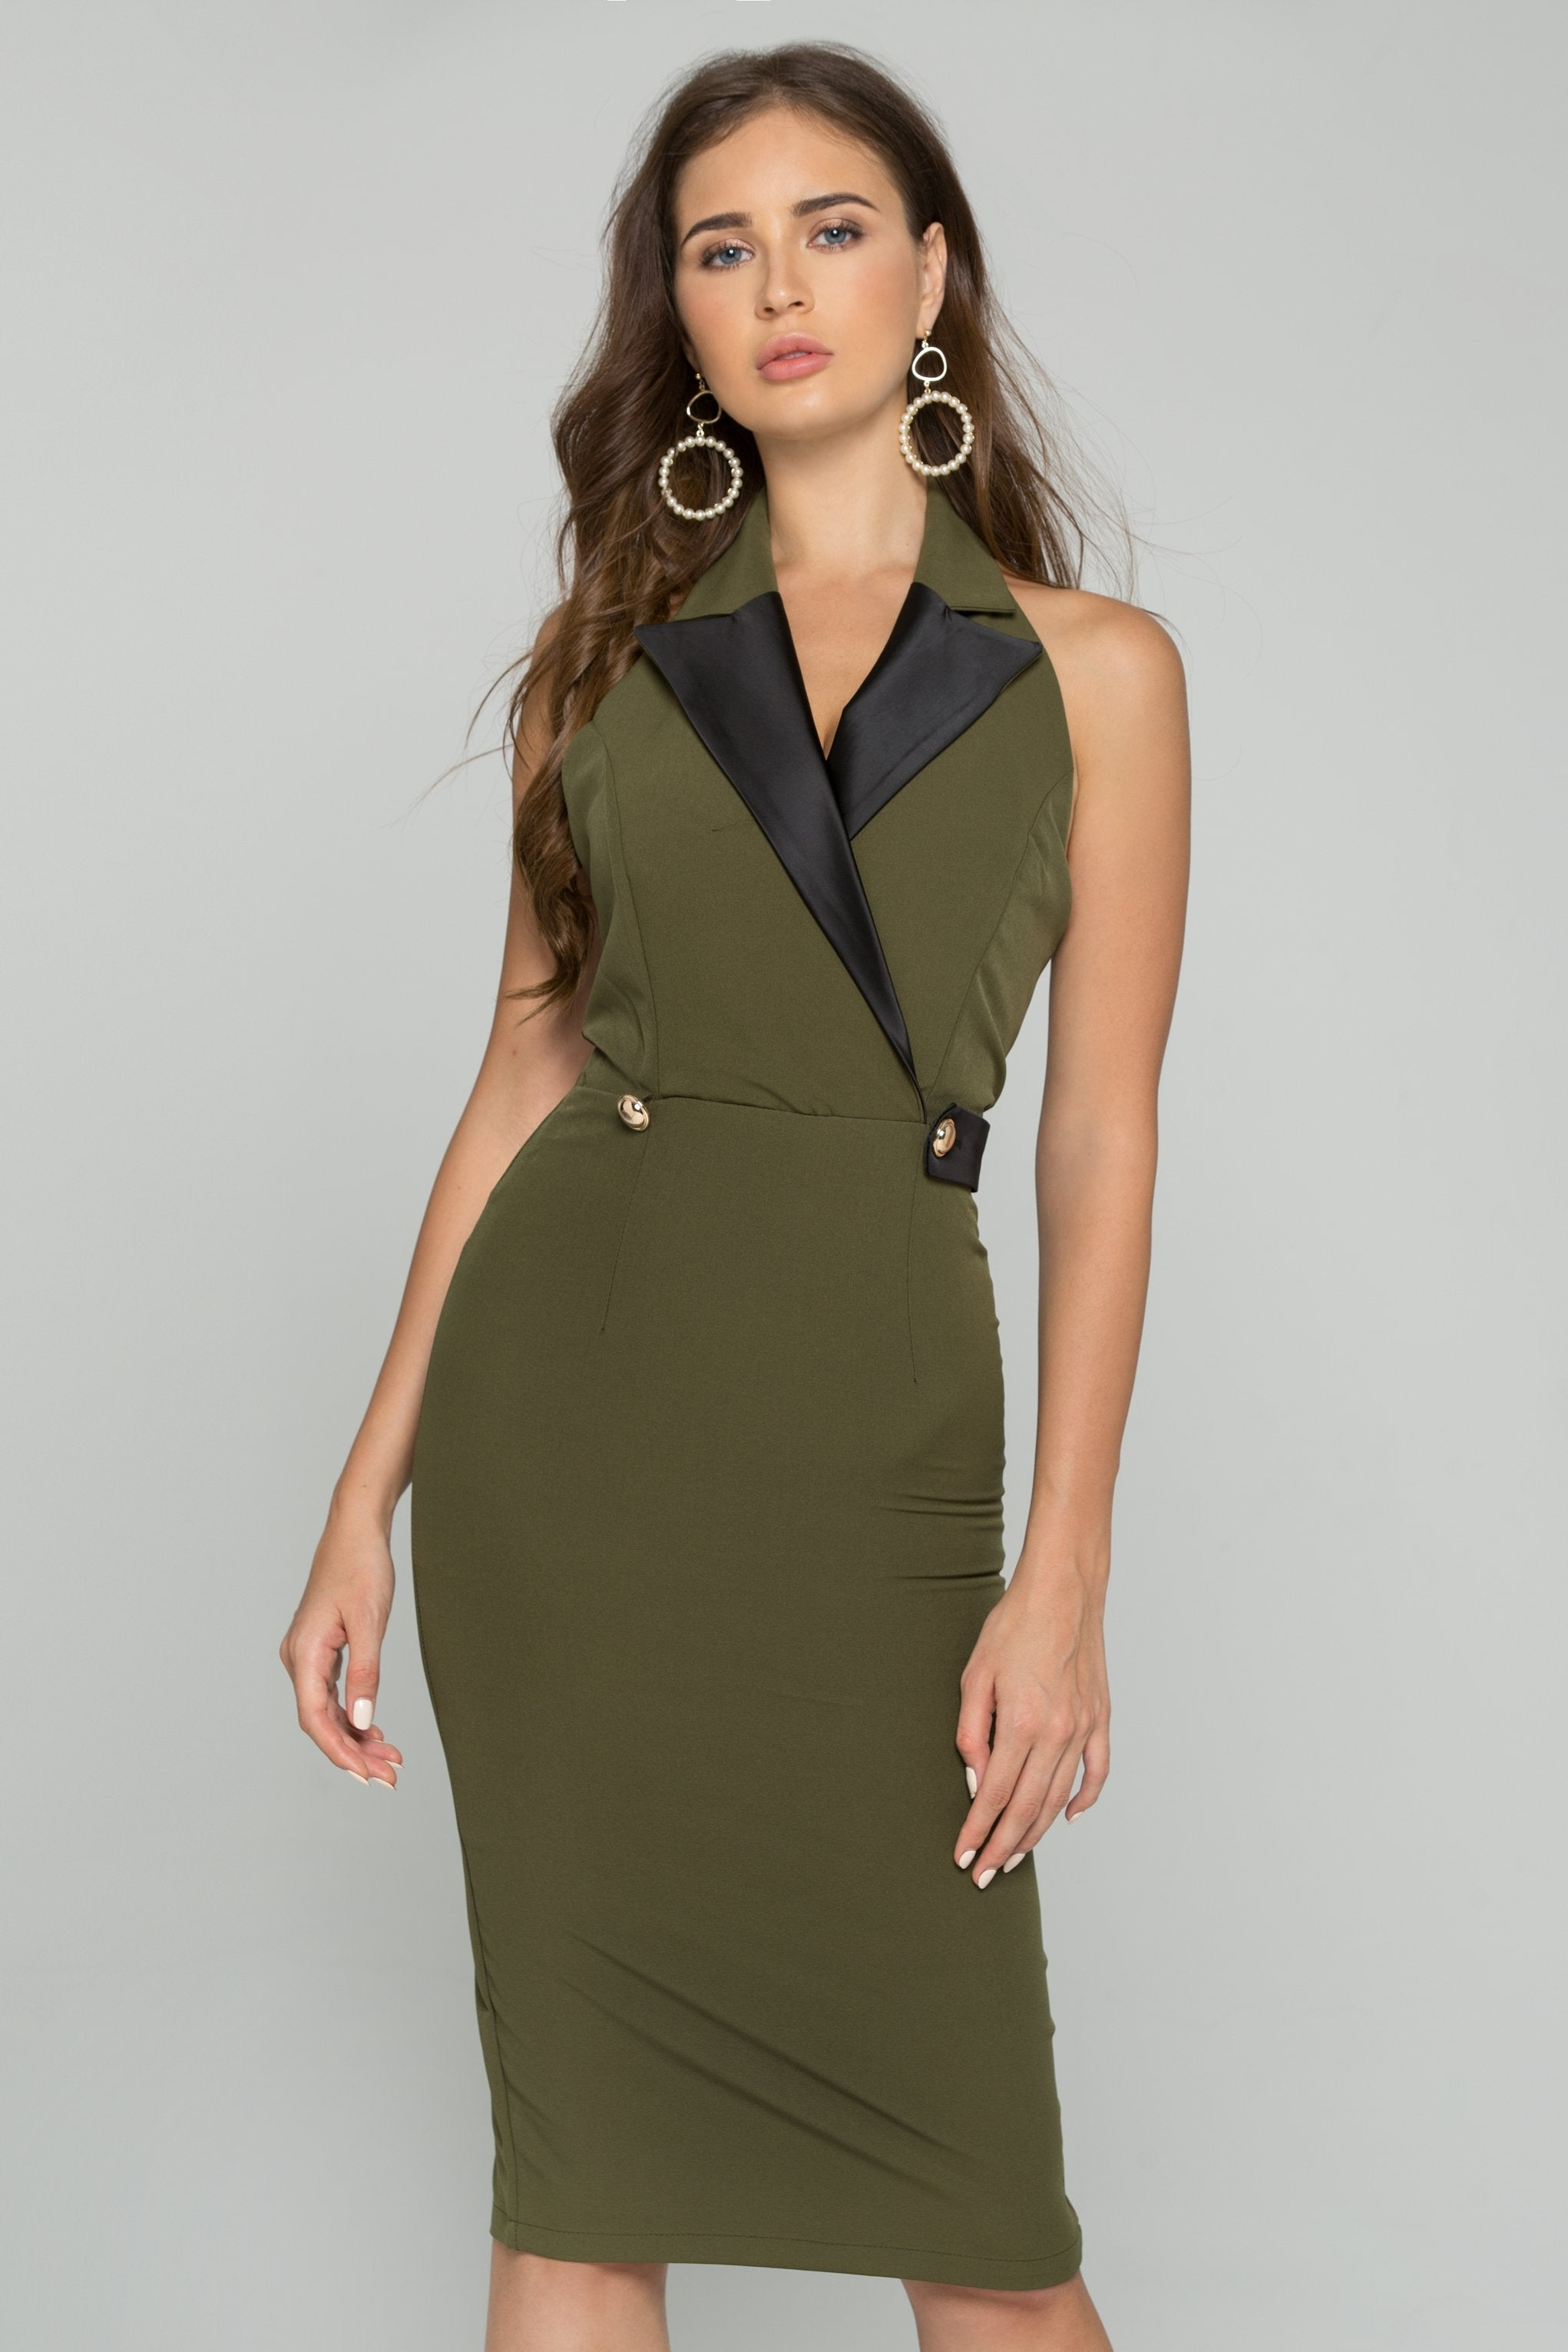 Army Green Halter Neck Blazer Gold Button Detail Backless Midi Dress